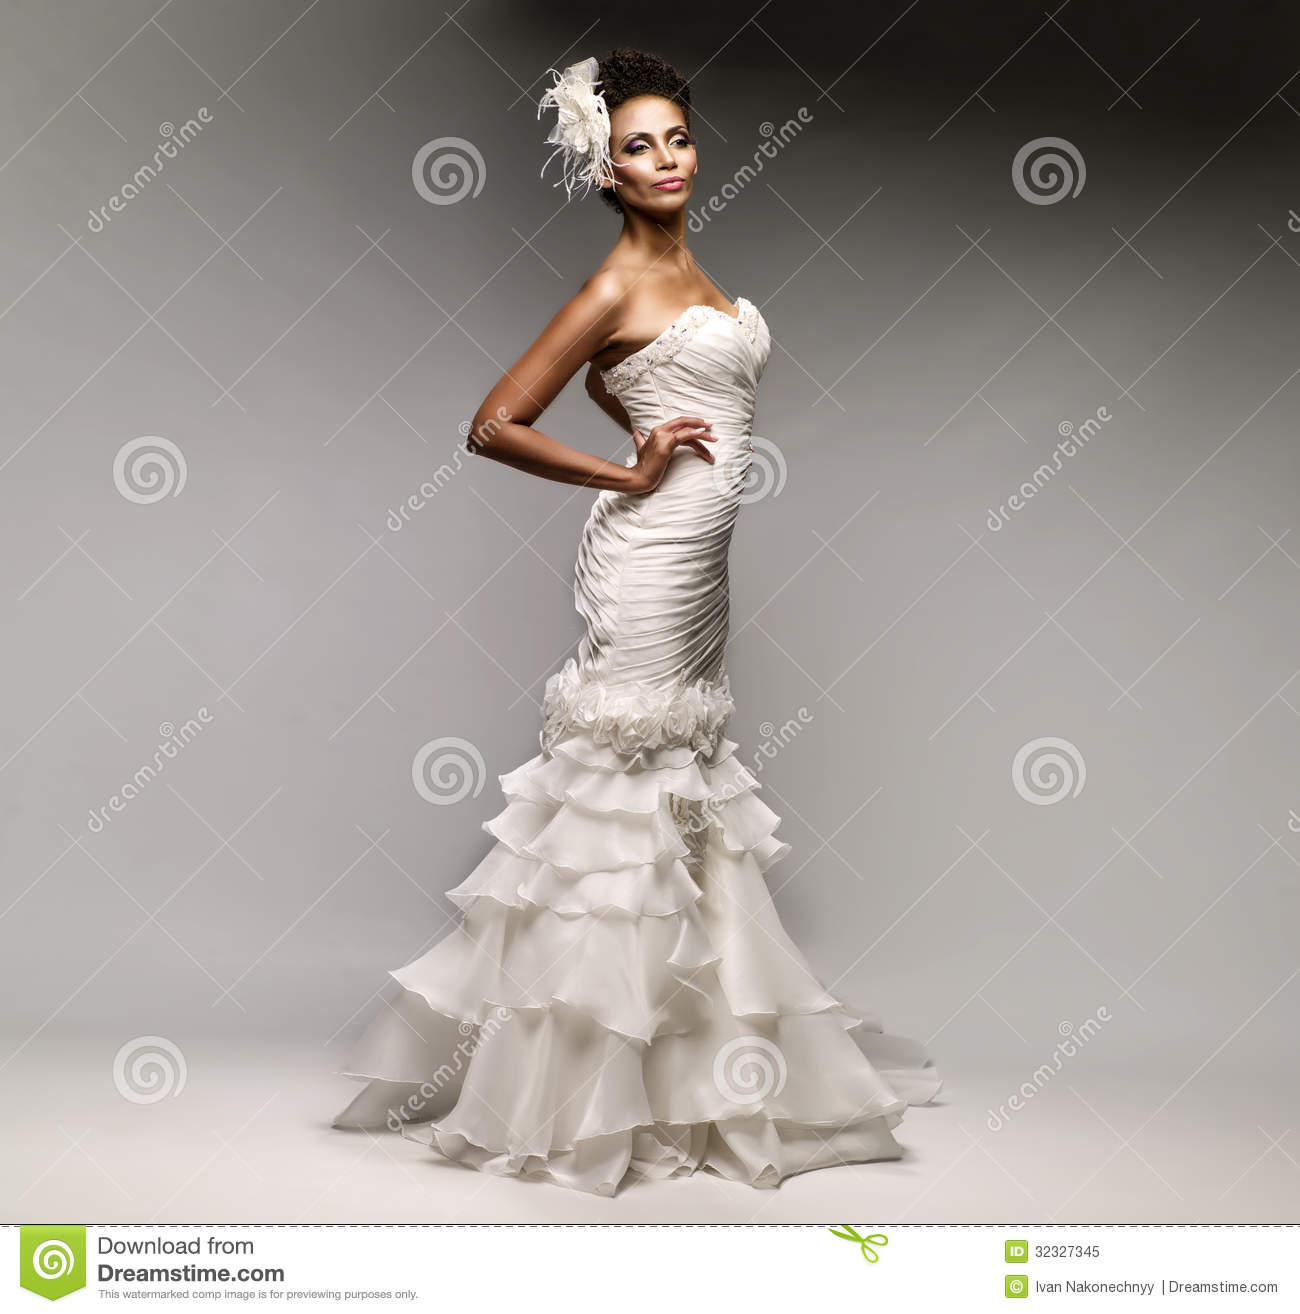 royalty free stock photo african american bride dress white background image african american wedding dresses African American bride